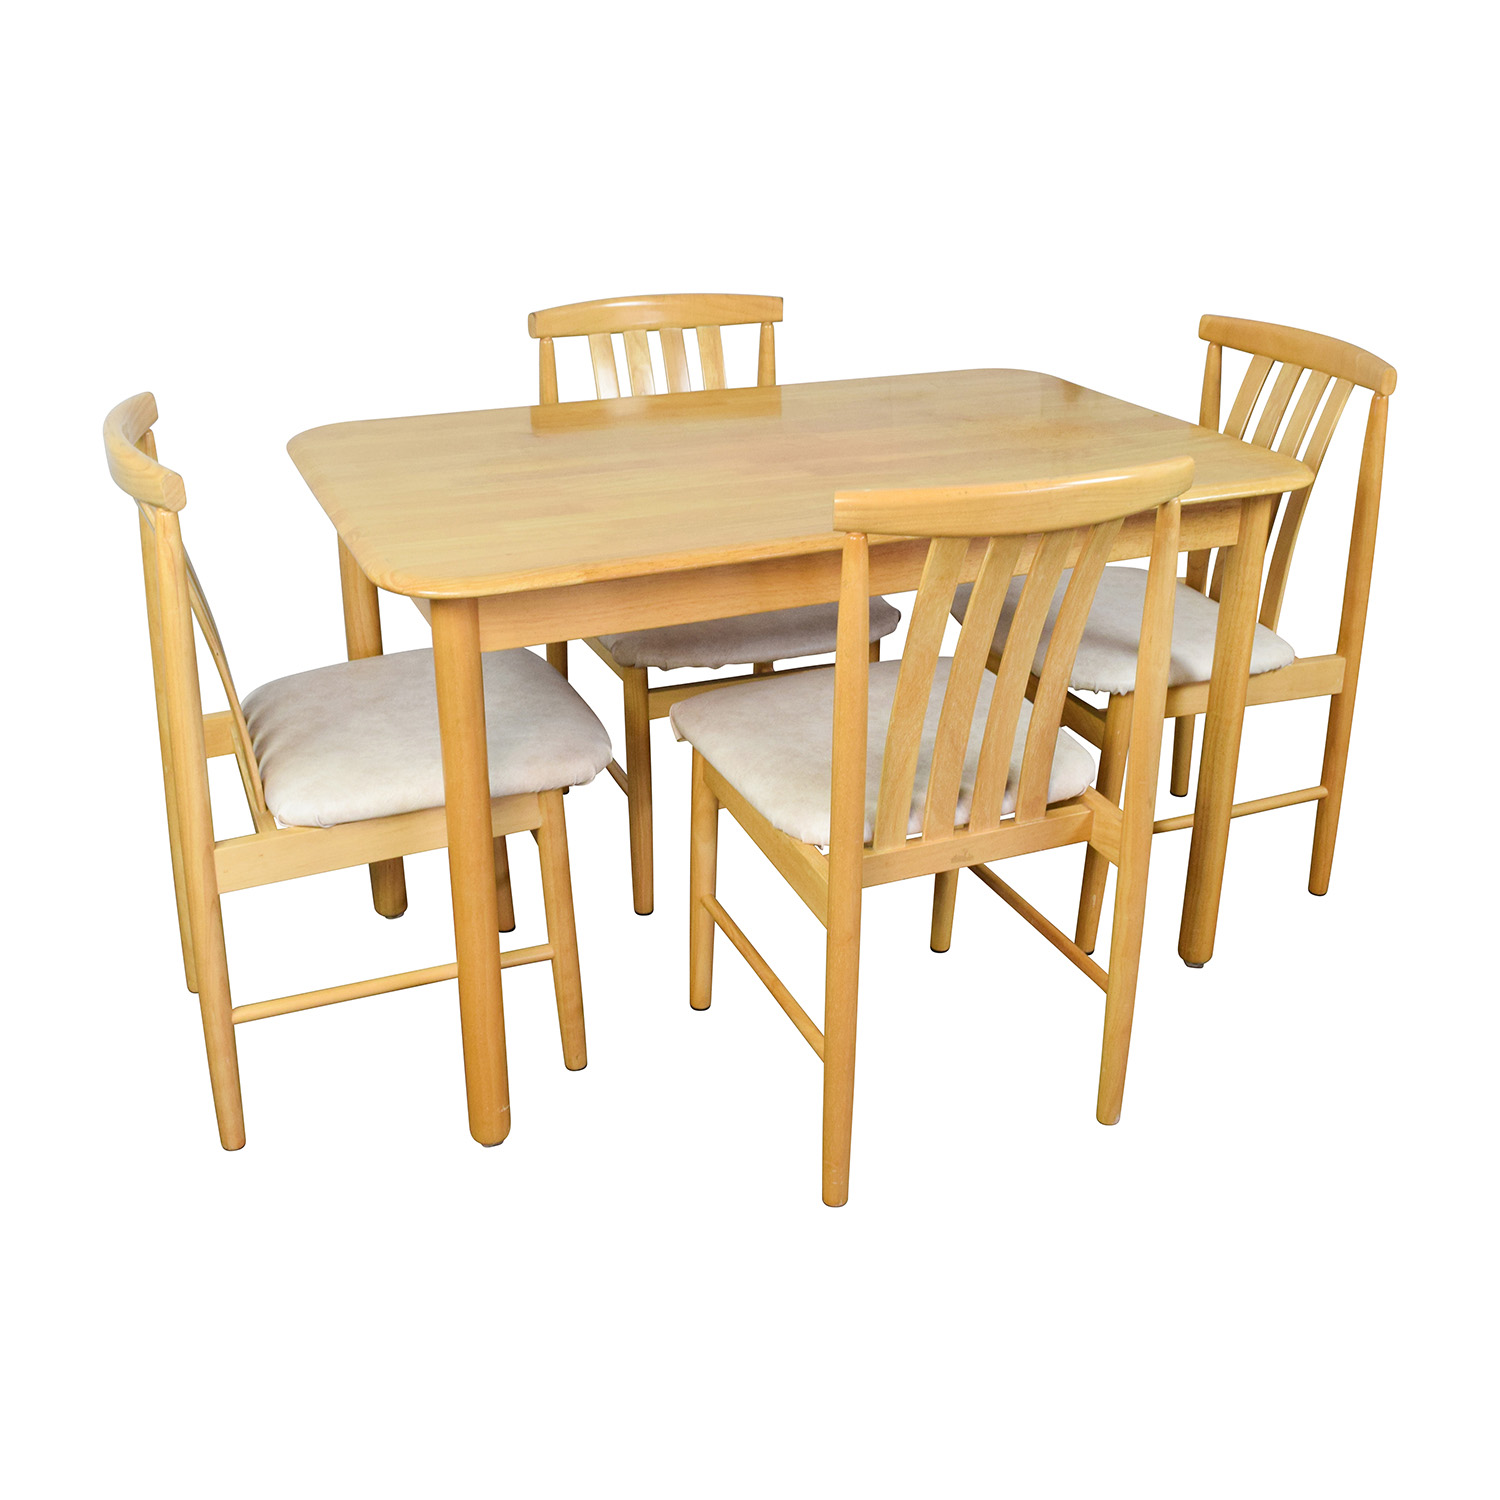 off  light wood dining table with four chairs  tables - light wood dining table with four chairs  tables